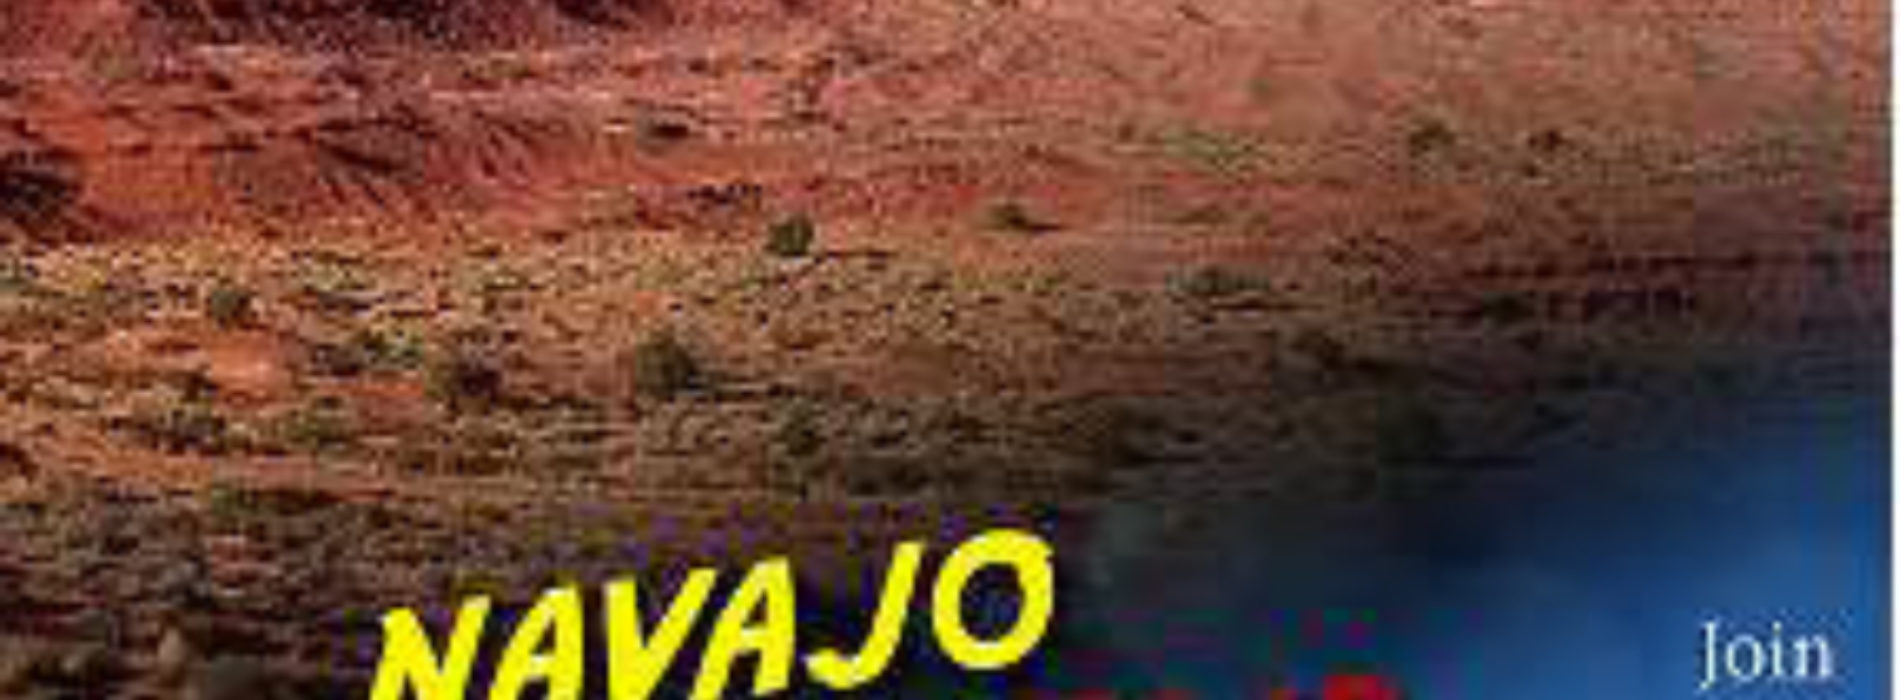 Navajo Mission Trip Meeting Set for Sunday